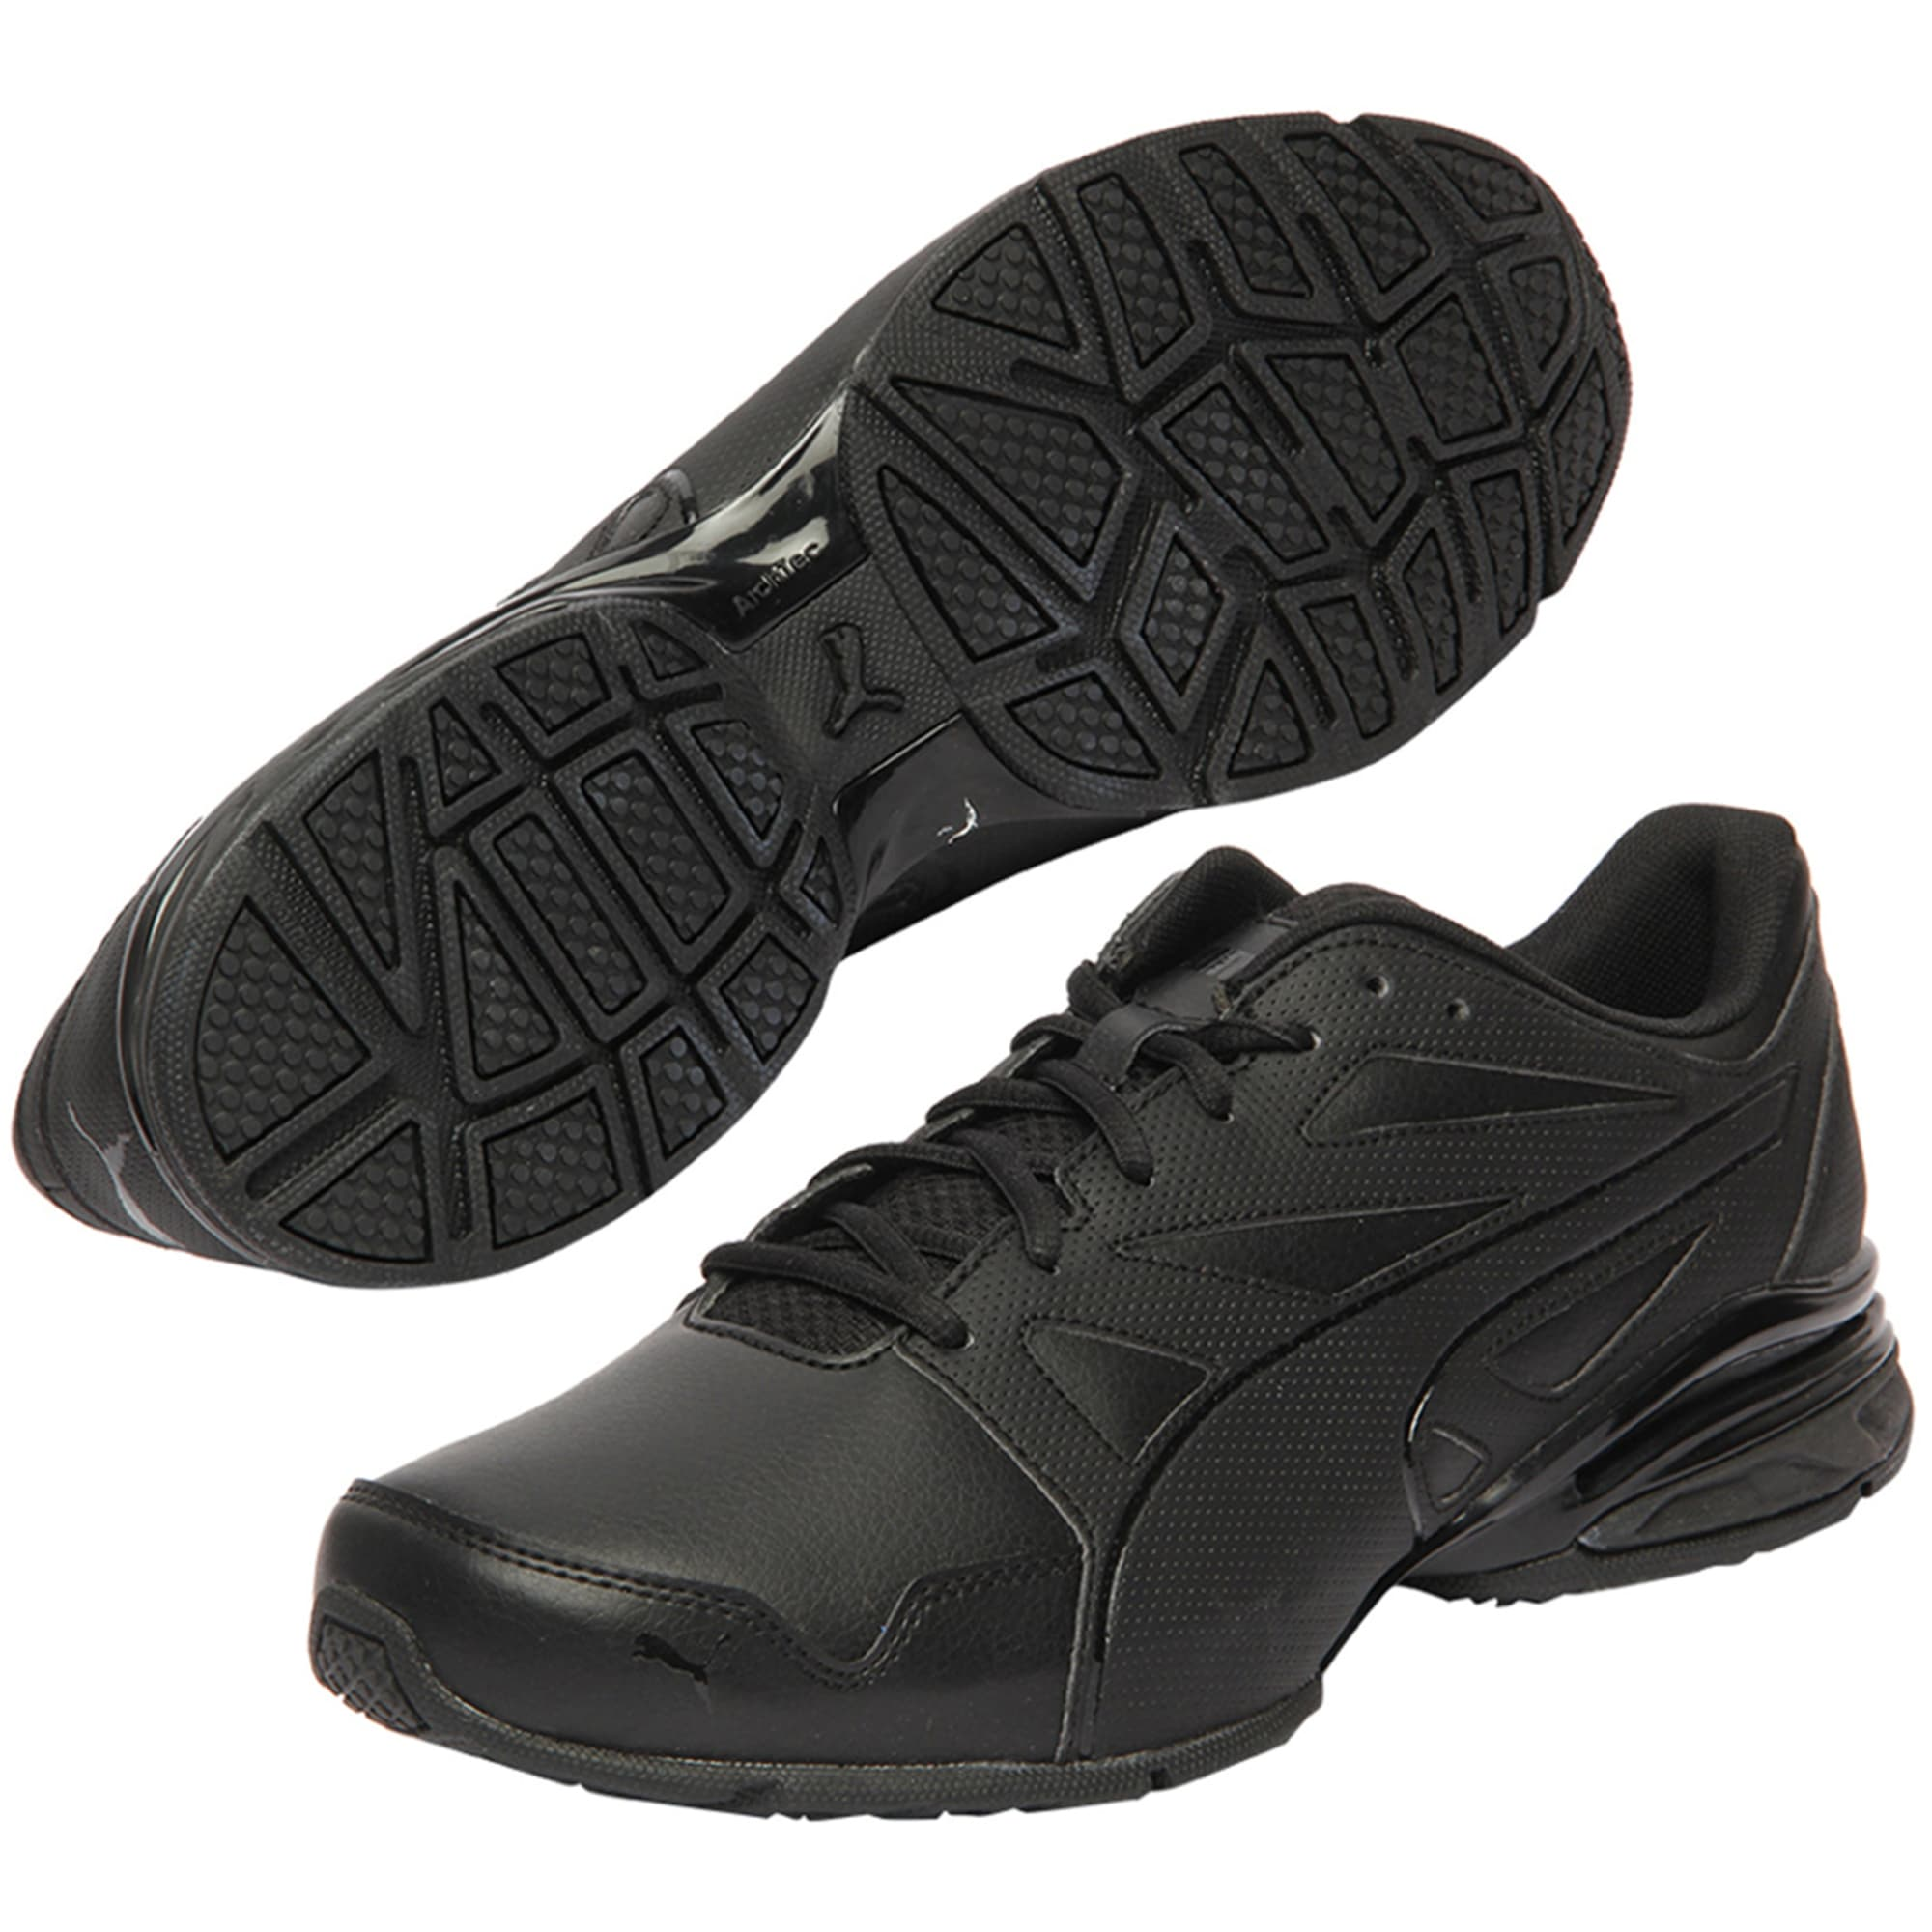 Tazon Modern Fracture Sneakers